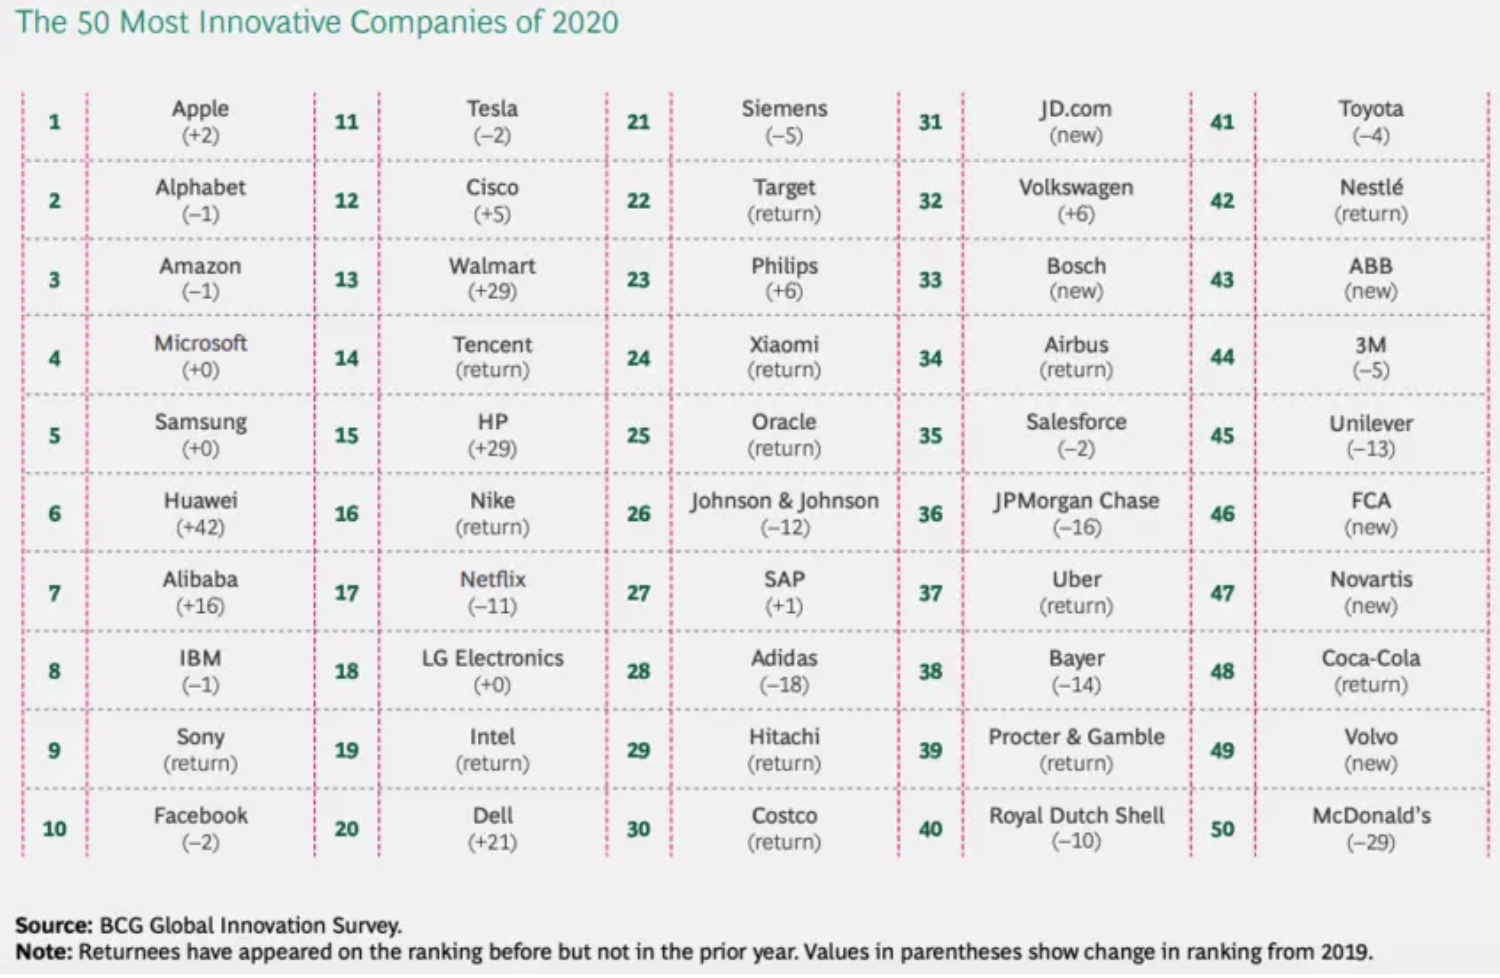 The 50 most innovative companies of 2020.